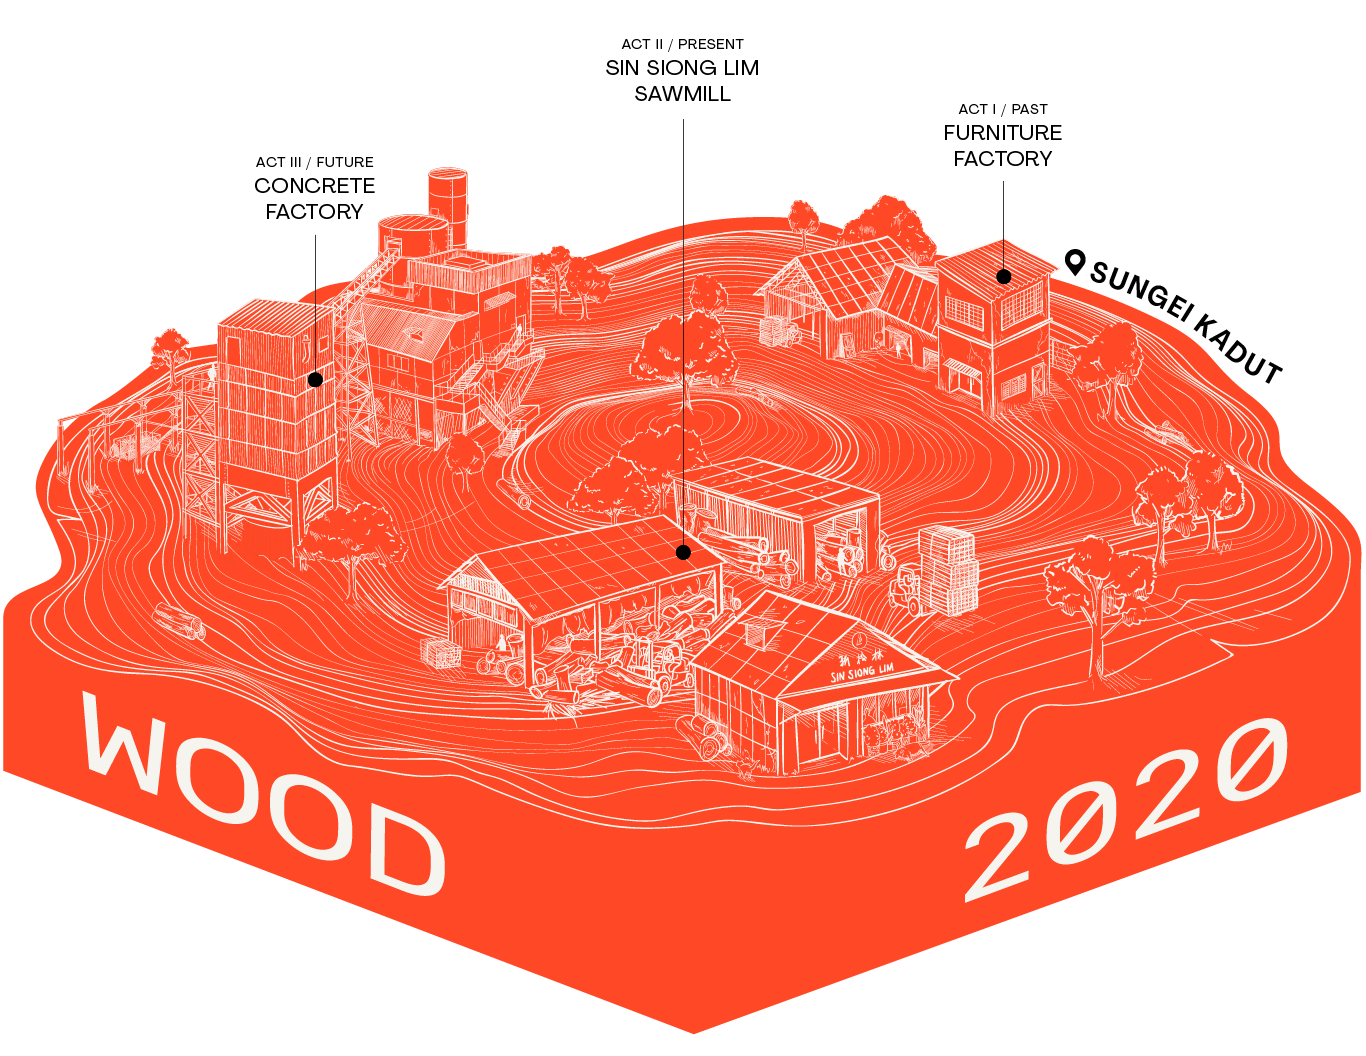 WOOD 2020 hero image, illustrated wood cross-section highlighting three sites, furniture factory, concrete factory, sawmill